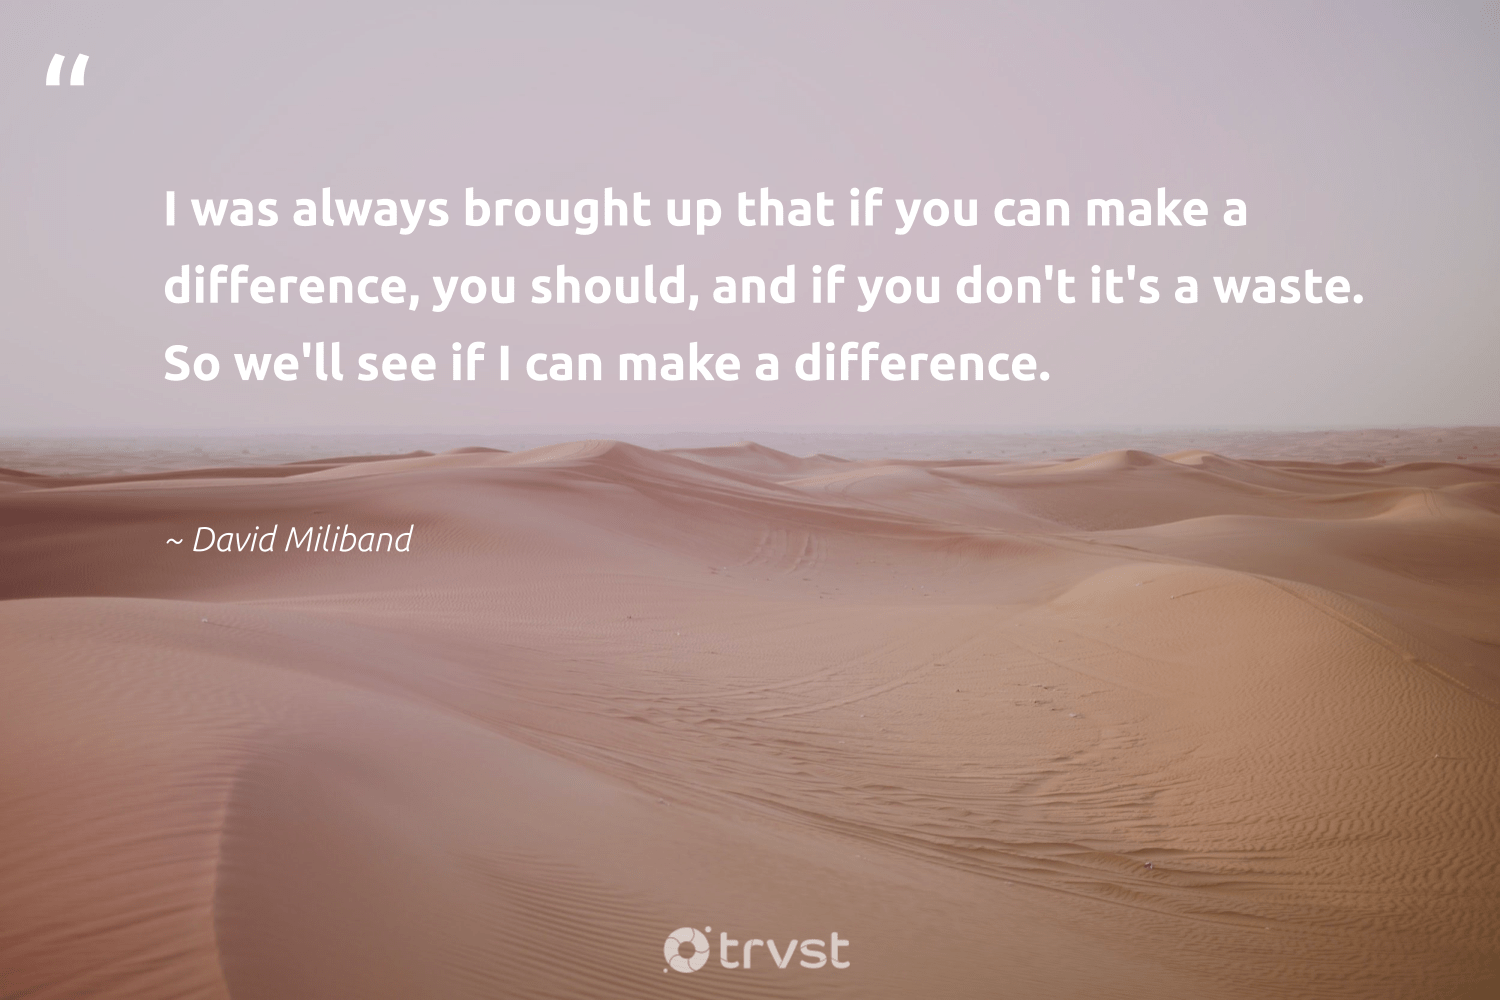 """""""I was always brought up that if you can make a difference, you should, and if you don't it's a waste. So we'll see if I can make a difference.""""  - David Miliband #trvst #quotes #waste #makeadifference #socialchange #bethechange #communities #dogood #equalopportunity #dotherightthing #strongercommunities #socialimpact"""